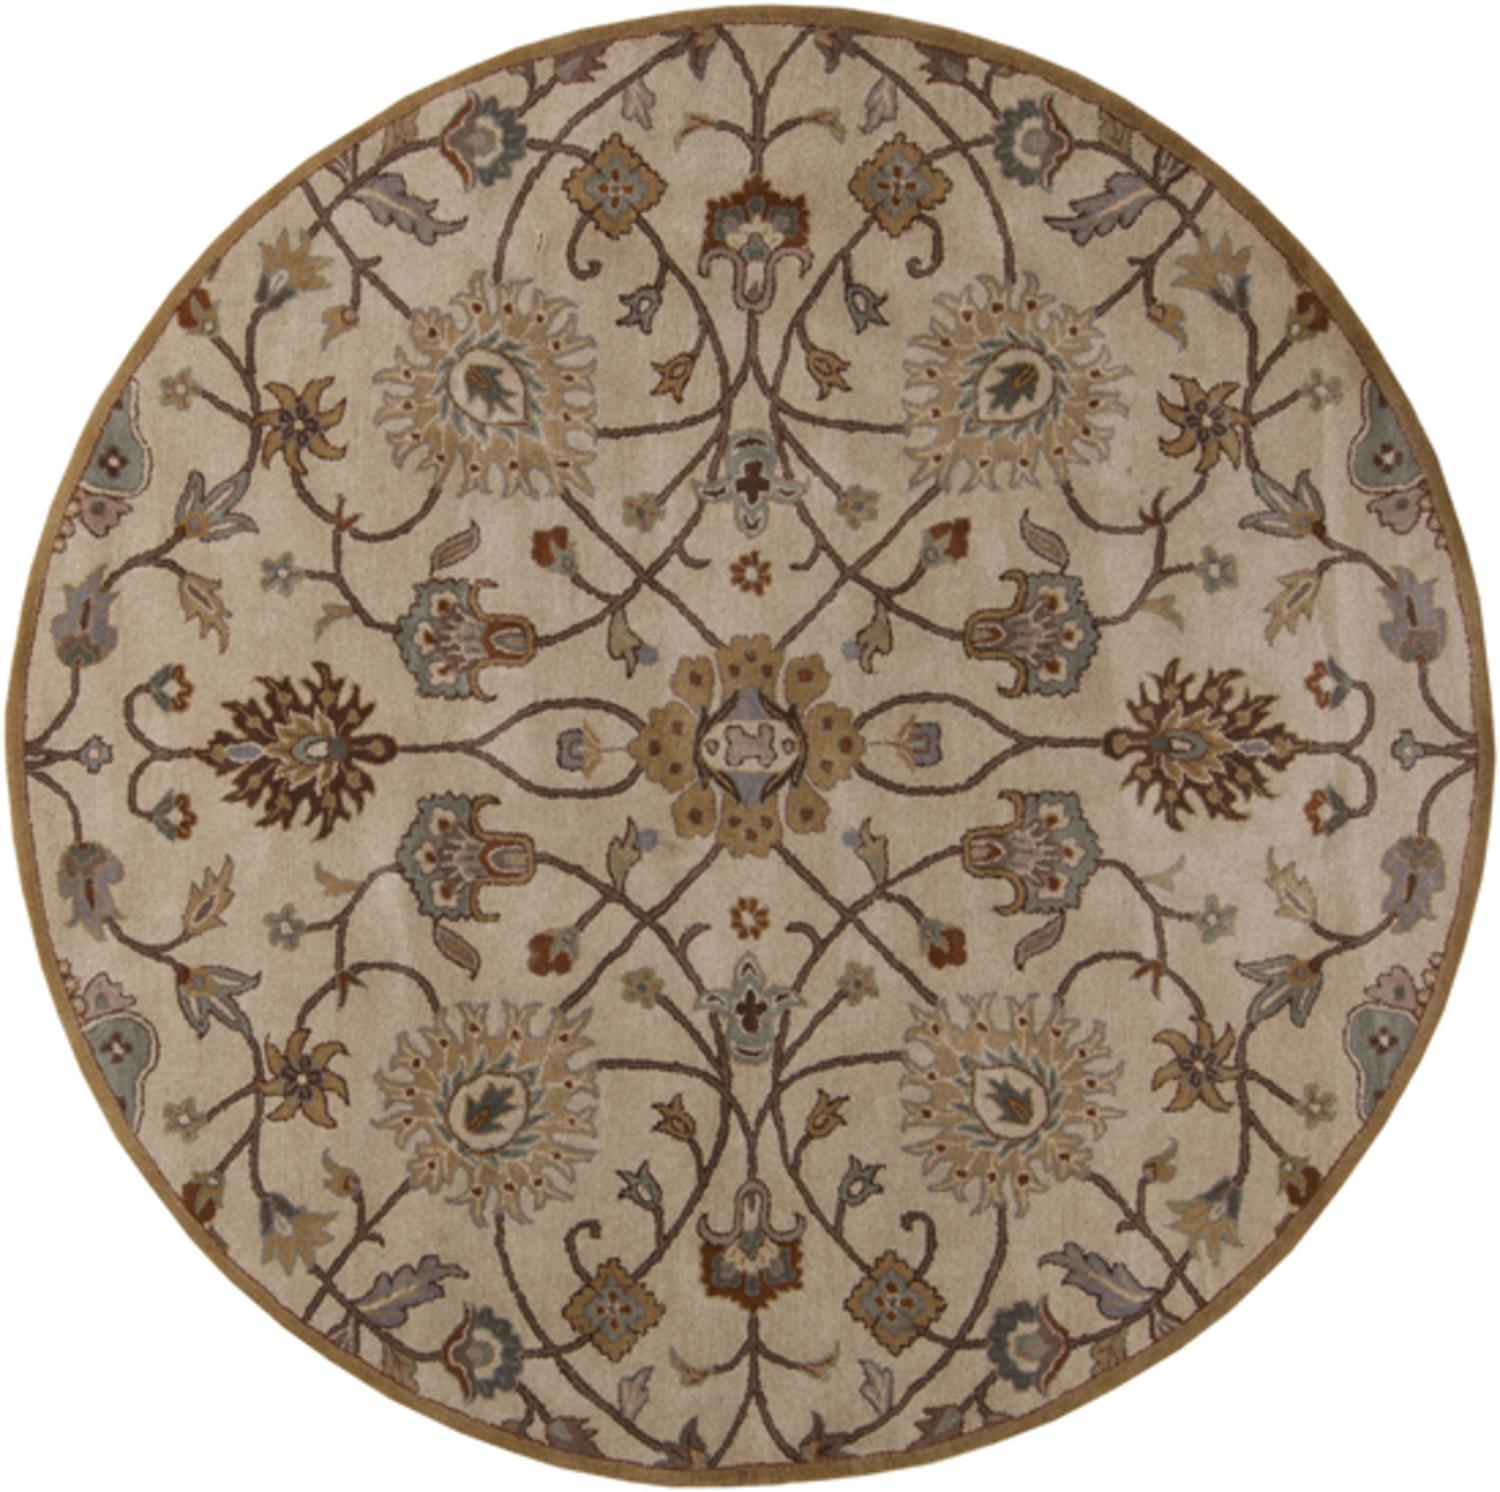 9.75' Valeria Desert Sand and Russet Brown Hand Tufted Round Wool Area Throw Rug